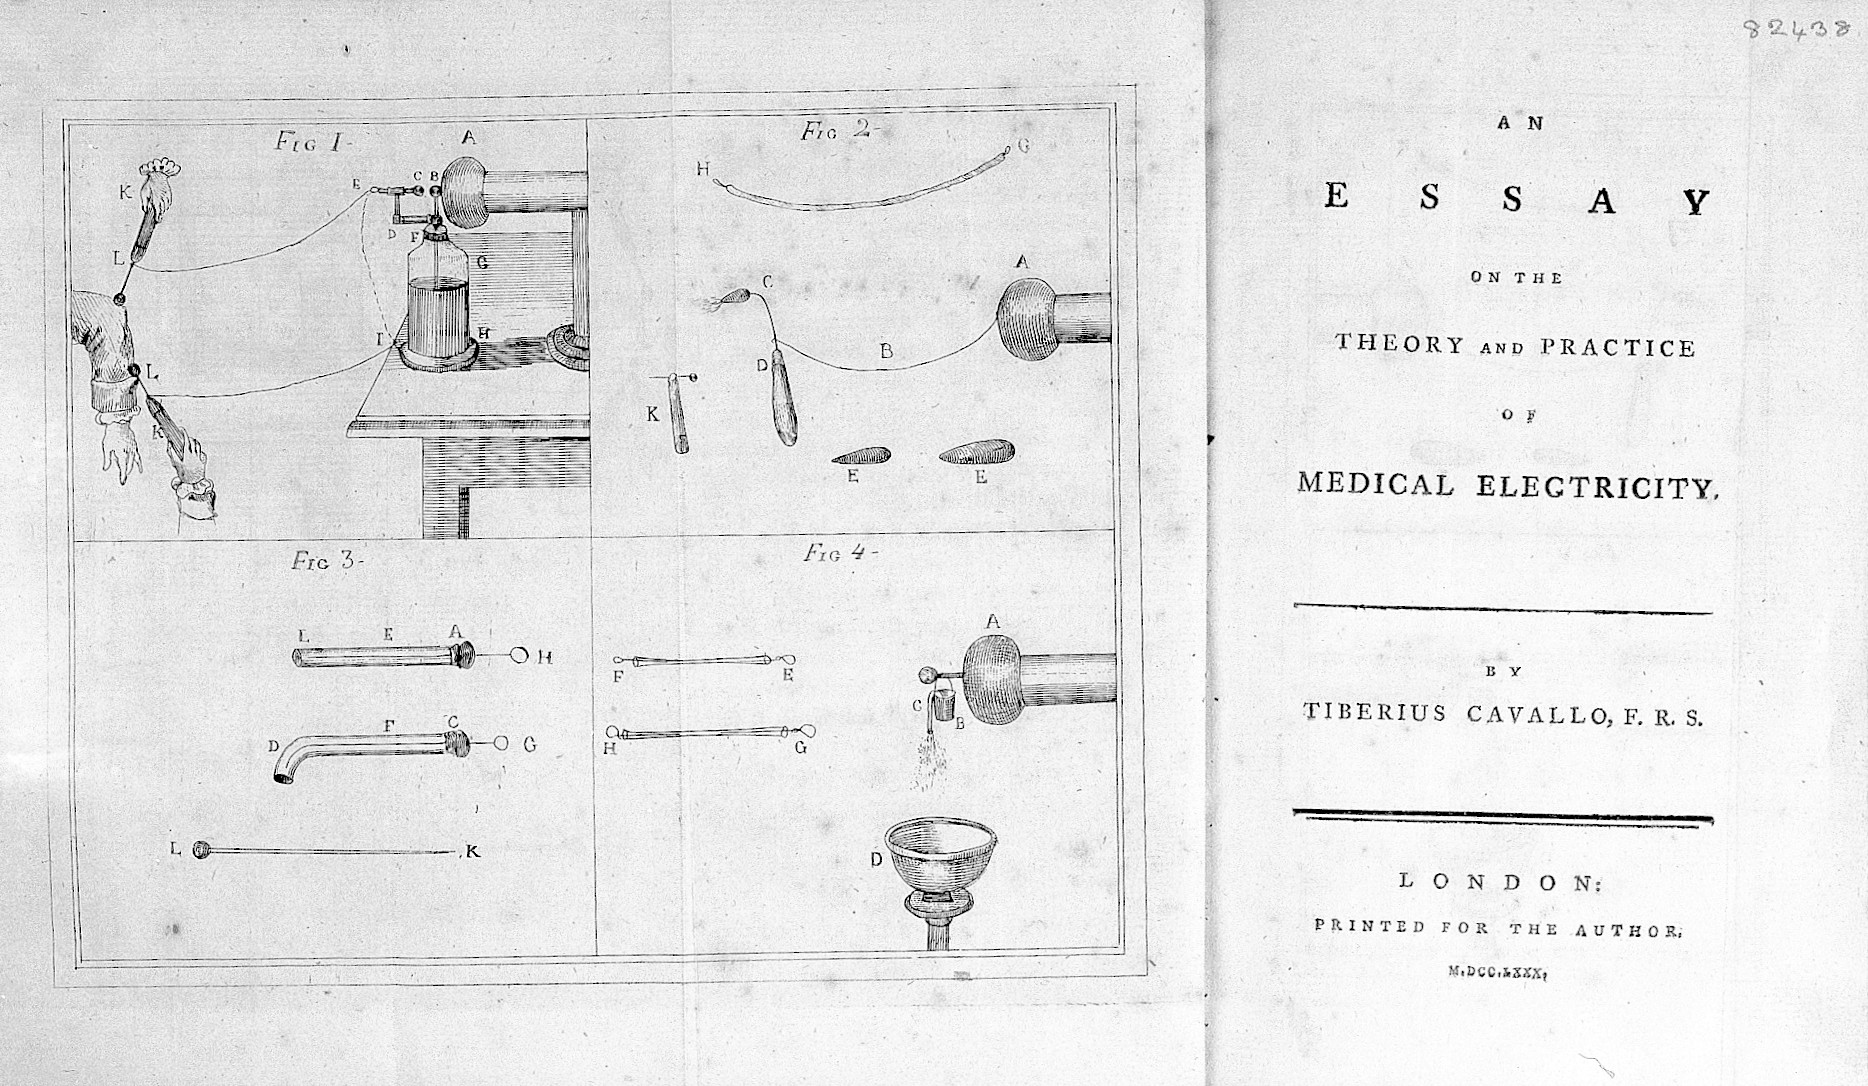 file cavallo essay on medical electricity 1780 title page file cavallo essay on medical electricity 1780 title page